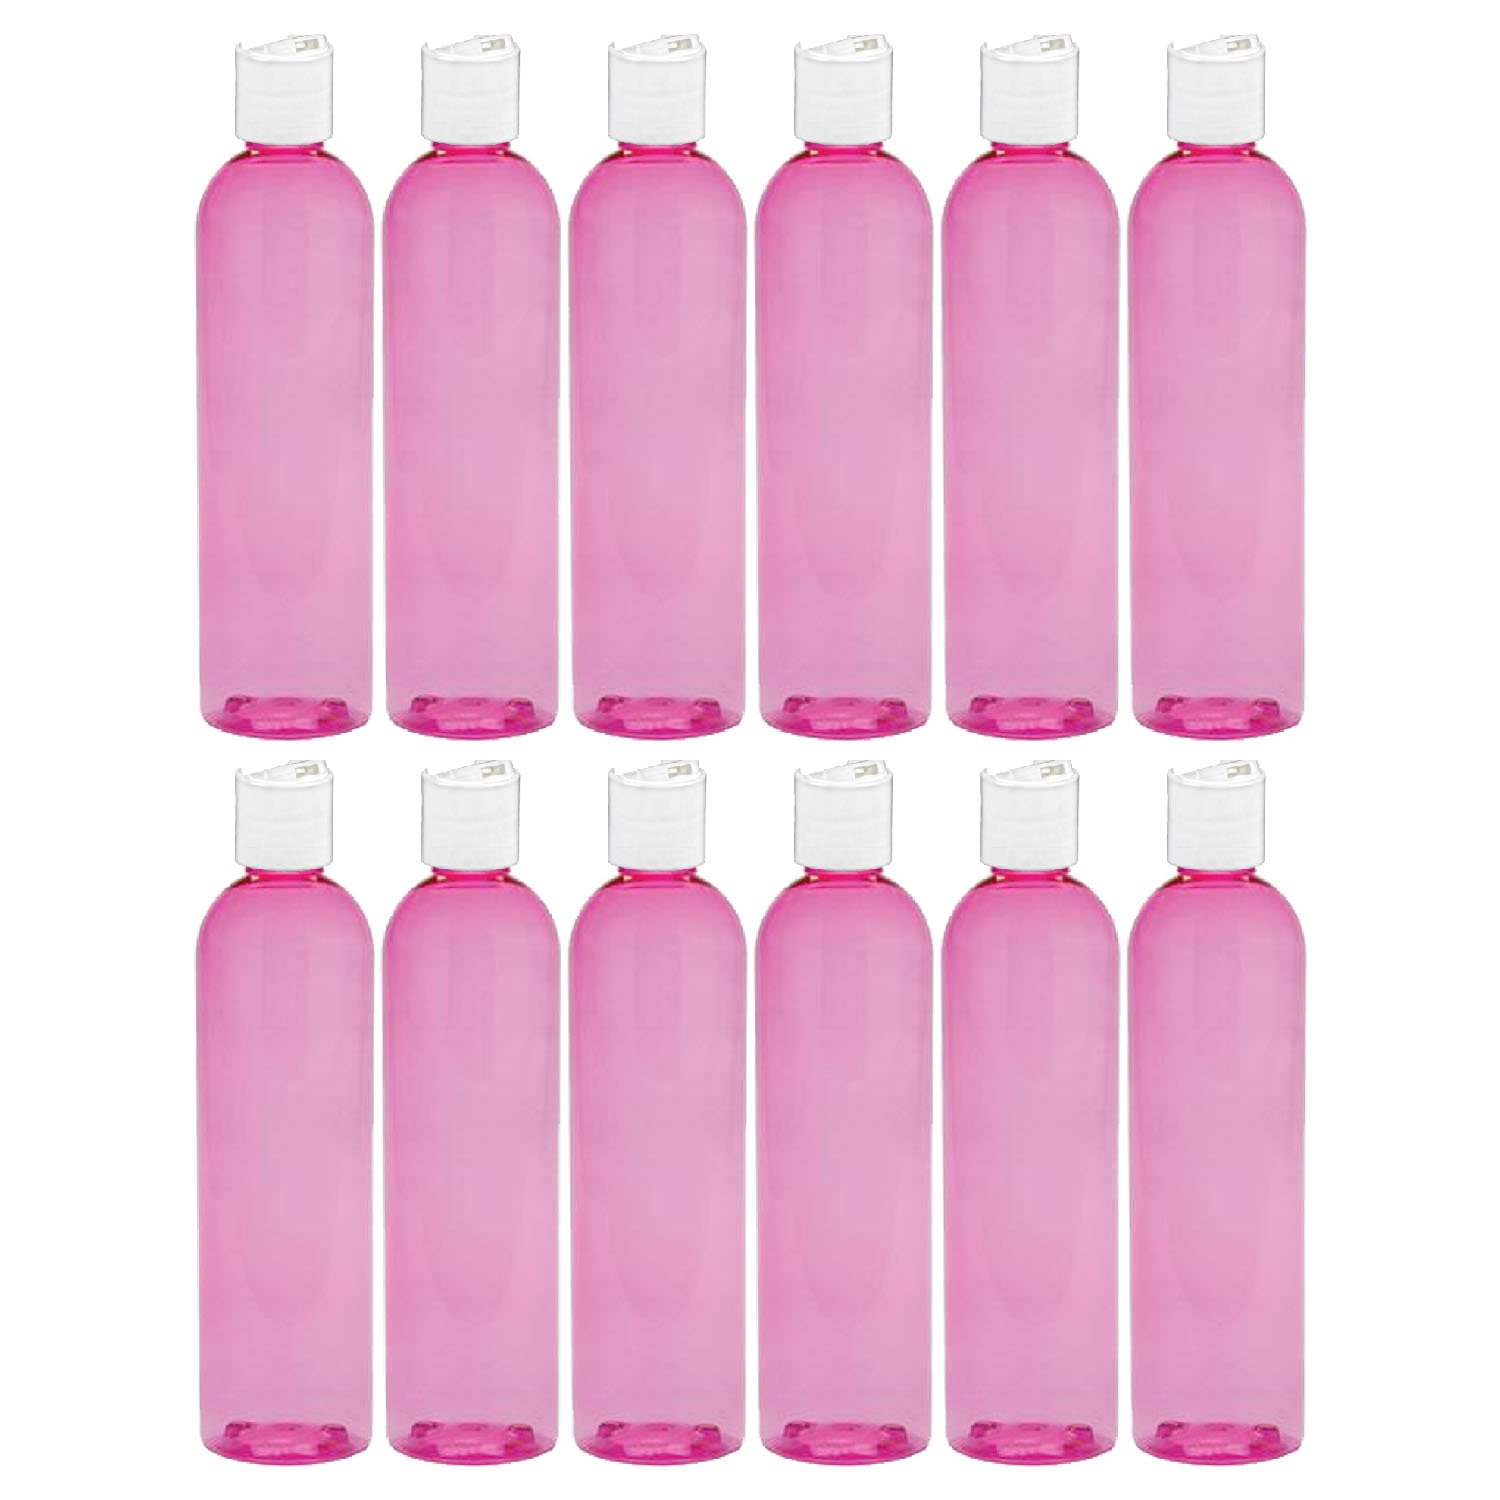 MoYo Natural Labs 8 oz Bottles Empty w Travel Clearance SALE! Limited time! National products Containers